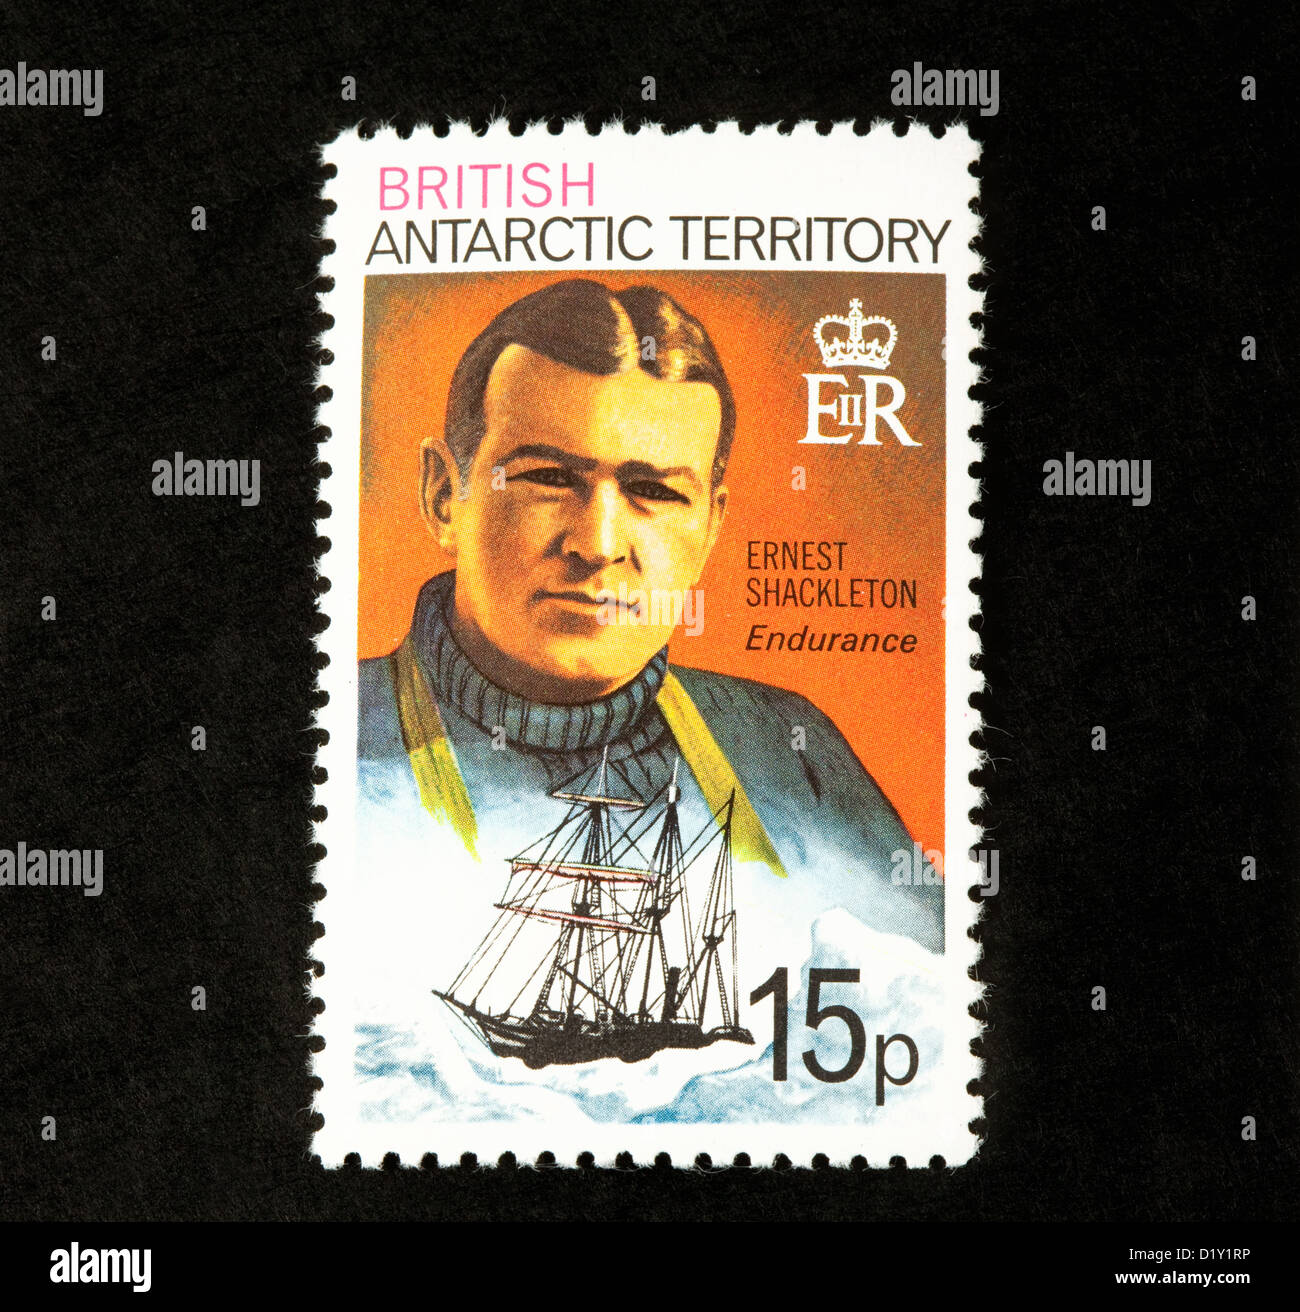 A stamp from the British Antarctic Territory showing explorer Ernest Shackleton and The Endurance - Stock Image